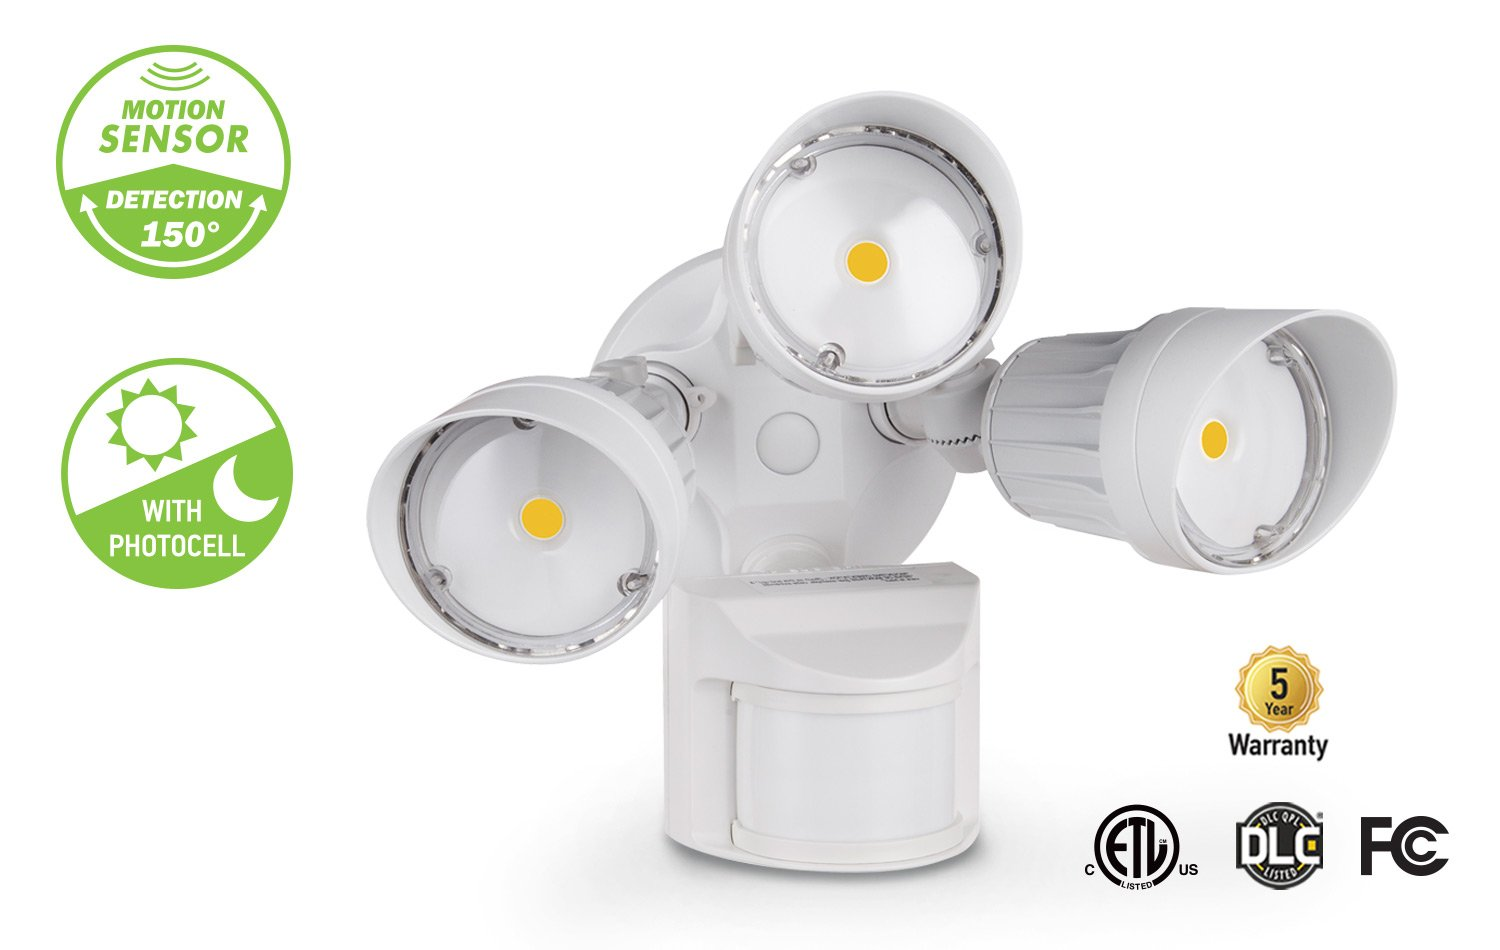 Asd Led Security Light 30w 3 Head With 150 Motion And Photocell Sensor Further Fluorescent Fixtures On Wiring Diagram Pc 5000k Dlc Standard White Home Improvement